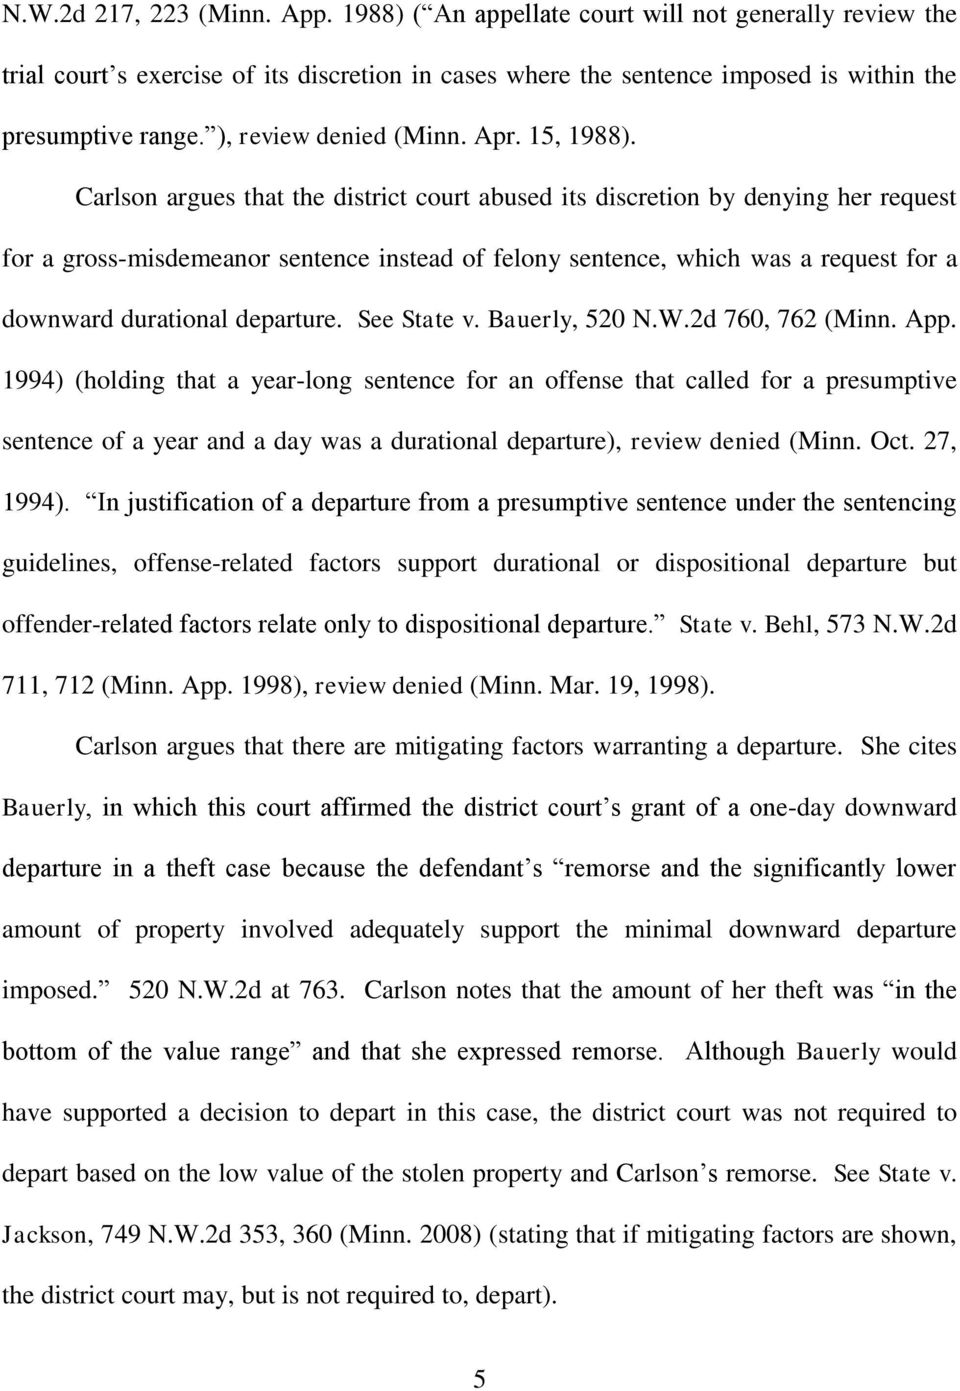 Carlson argues that the district court abused its discretion by denying her request for a gross-misdemeanor sentence instead of felony sentence, which was a request for a downward durational